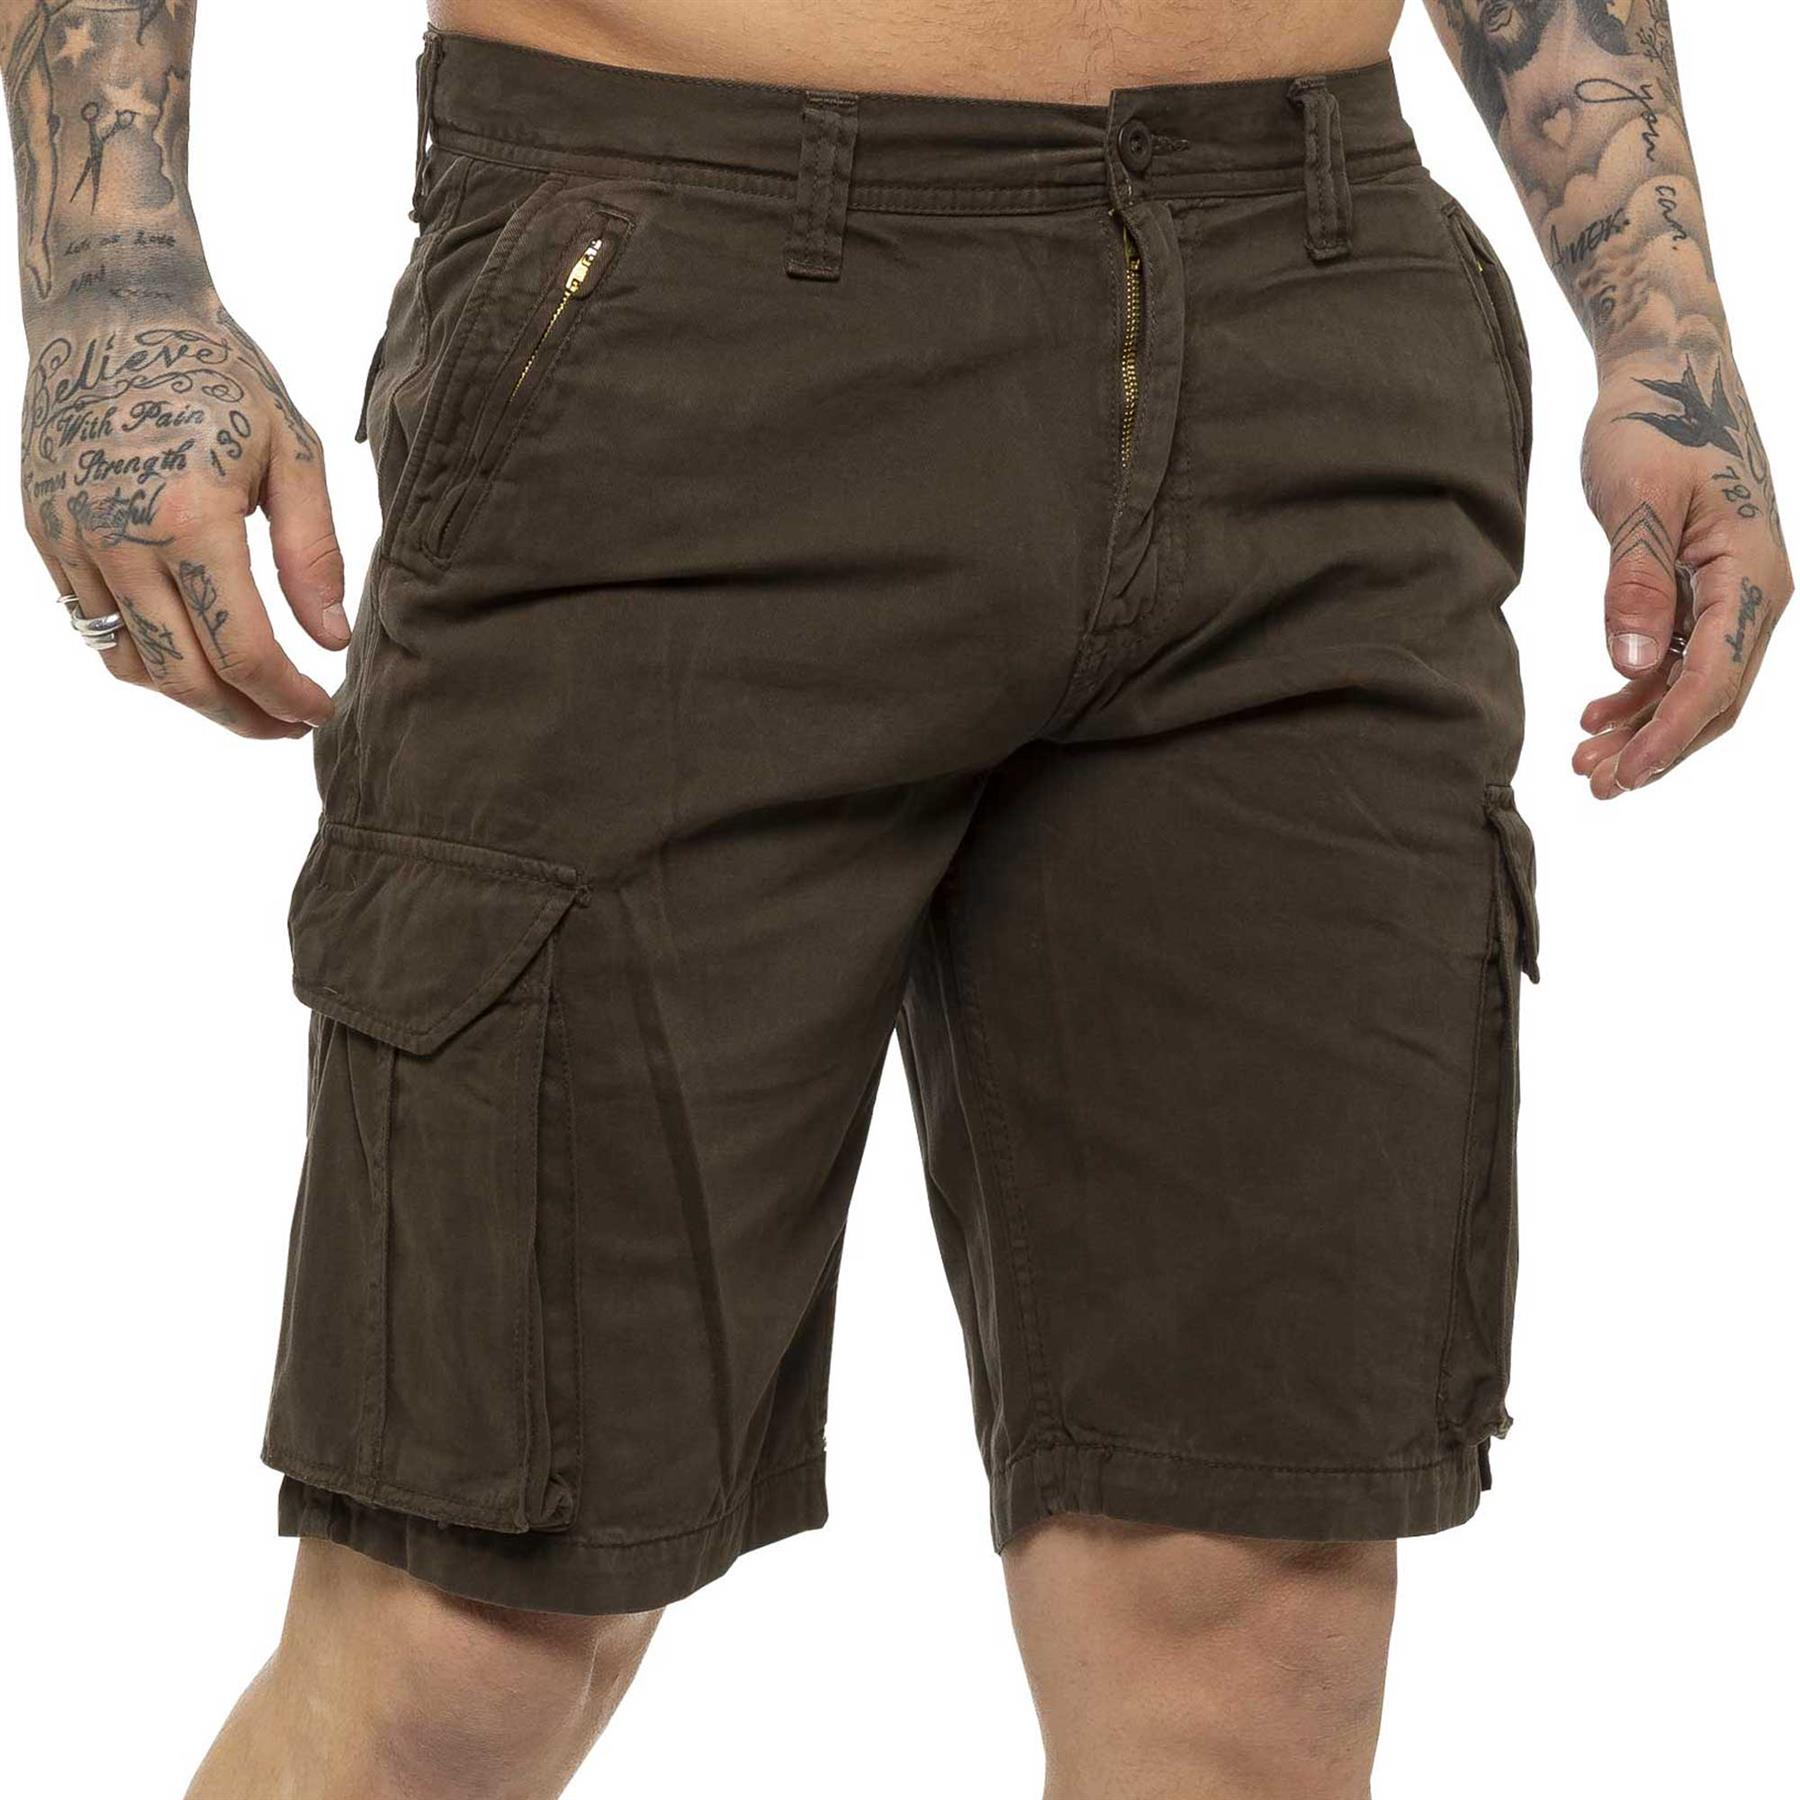 thumbnail 48 - Kruze Jeans Mens Army Combat Shorts Camouflage Cargo Casual Camo Work Half Pants